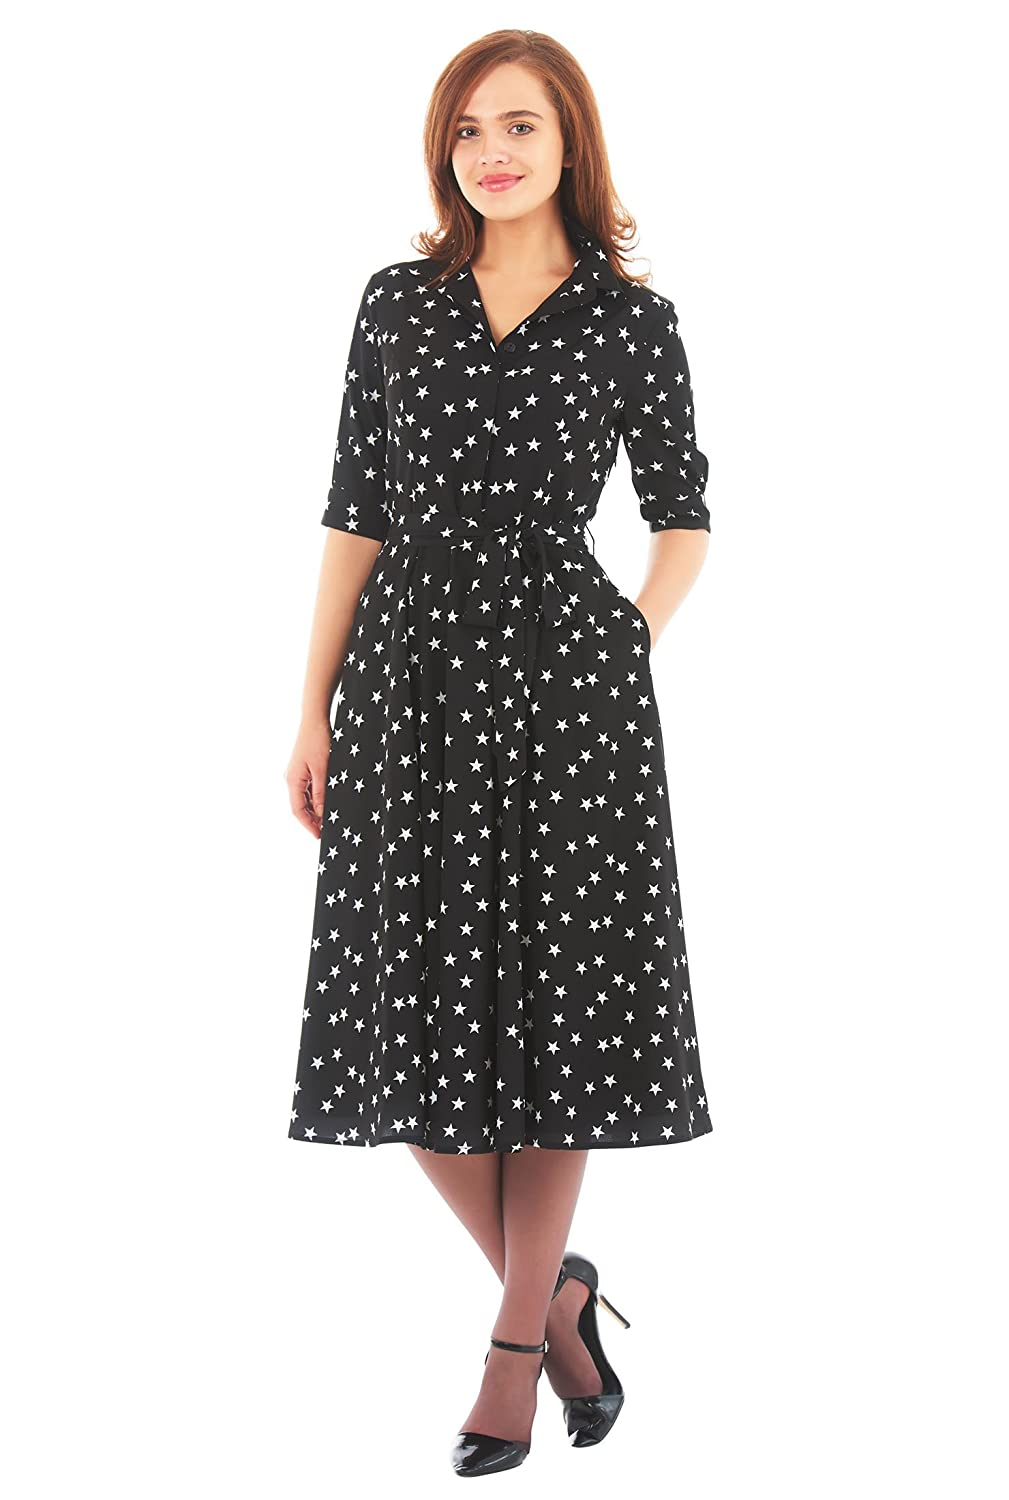 1940s Style Dresses | 40s Dress, Swing Dress Star print crepe sash tie shirtdress $64.95 AT vintagedancer.com